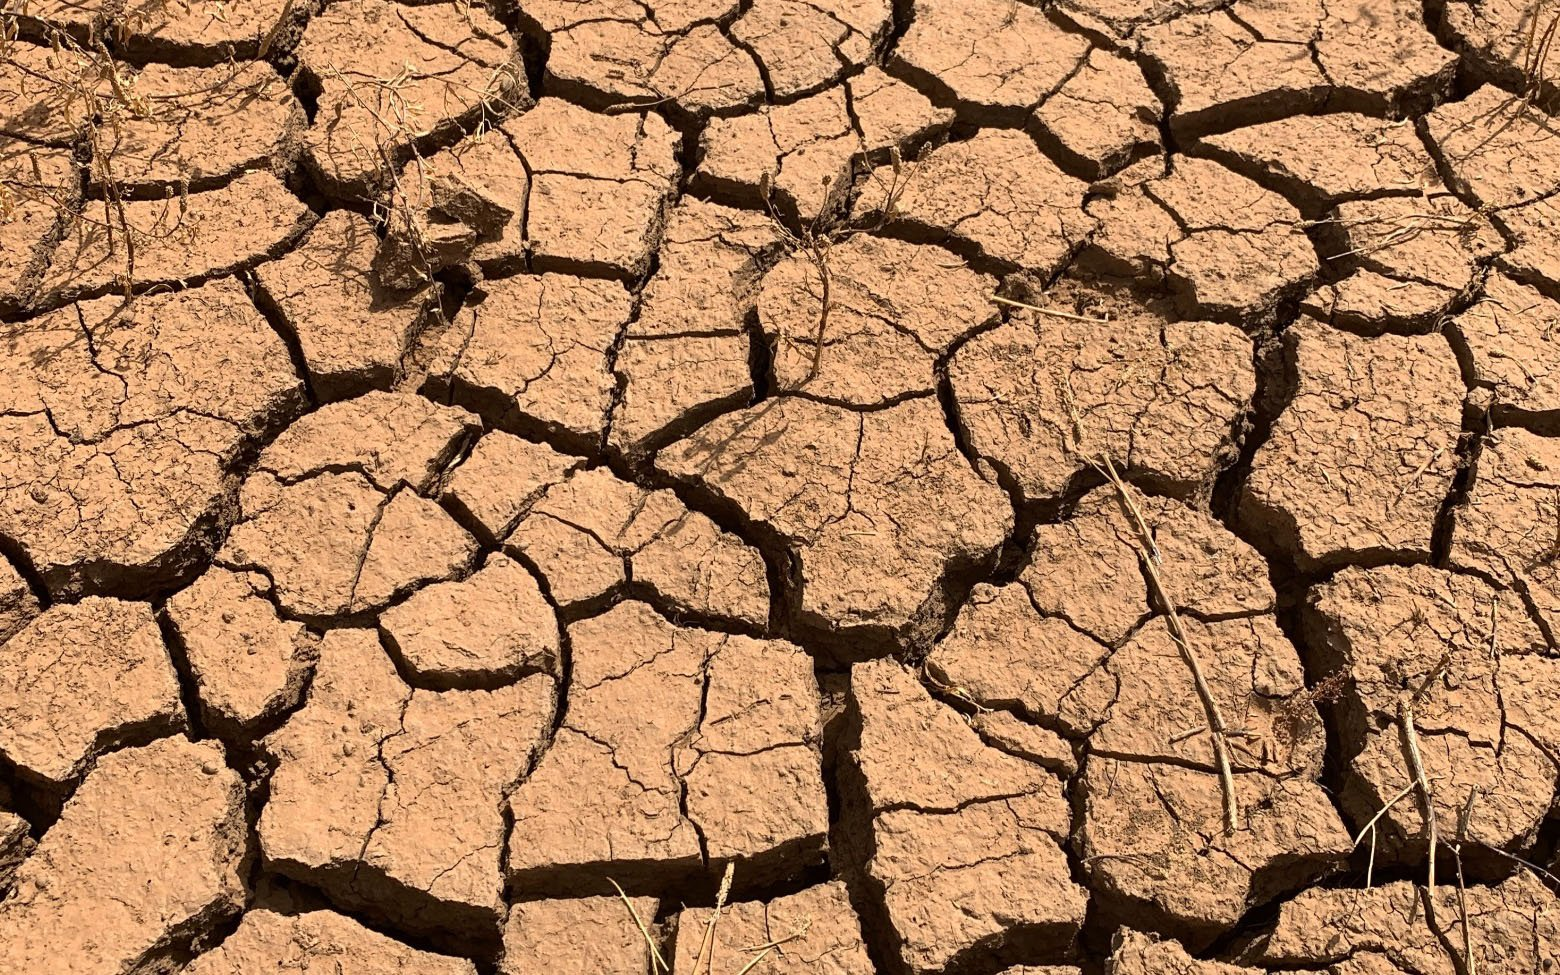 view of dry, cracked ground